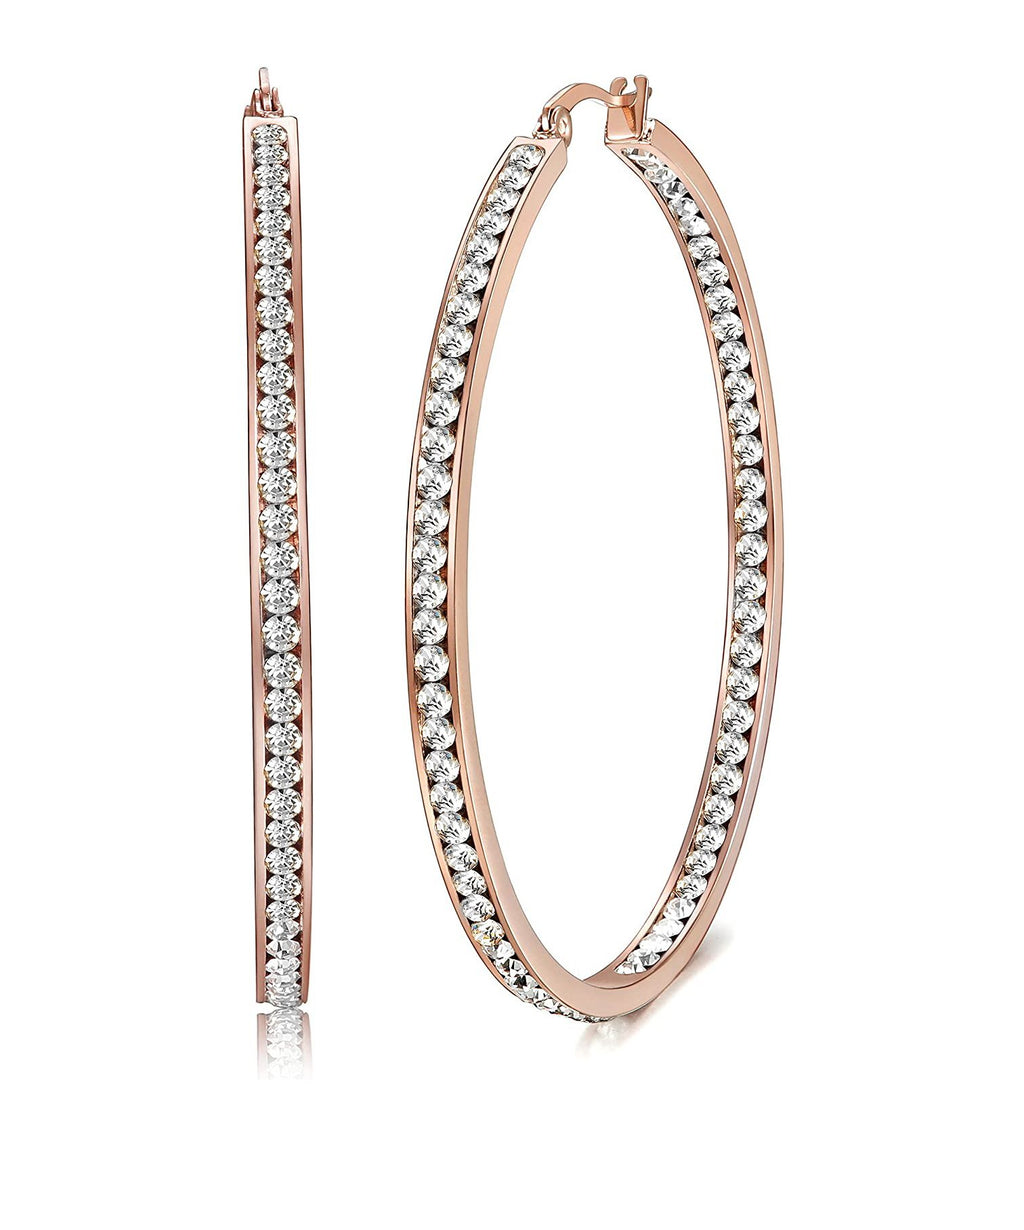 "2"" Pave Hoop Earring With Crystals in 18K Rose Gold Plated"